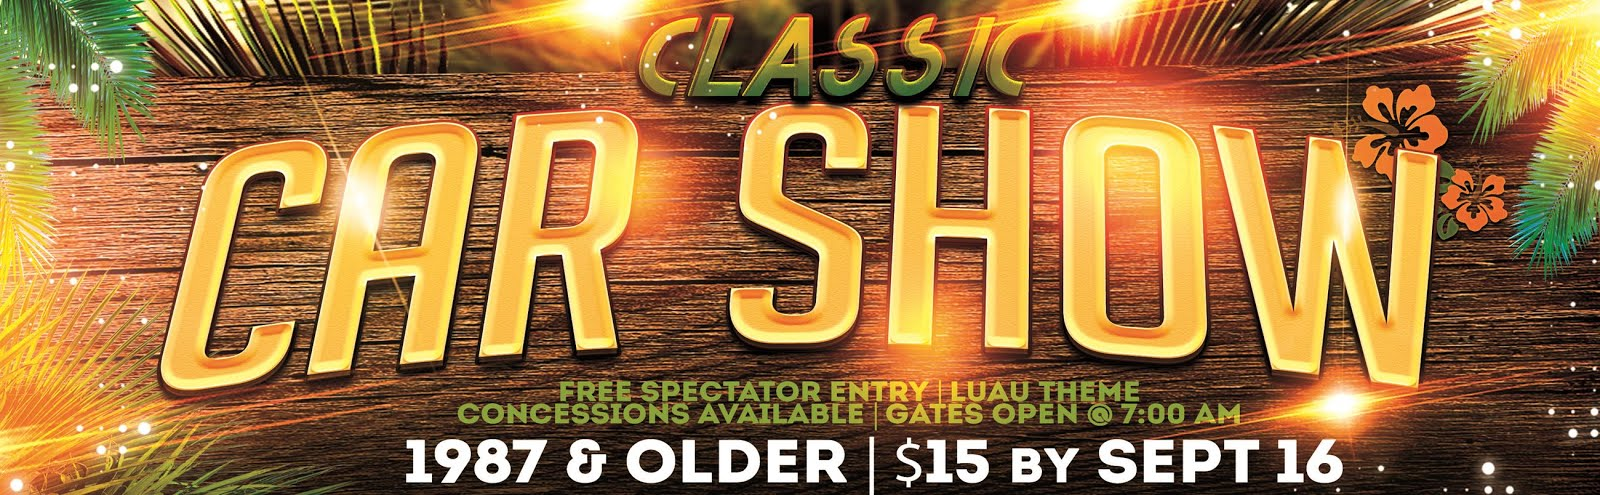 17th Annual CARSTAR HI-TECH Collision Classic Car and Truck Show!!